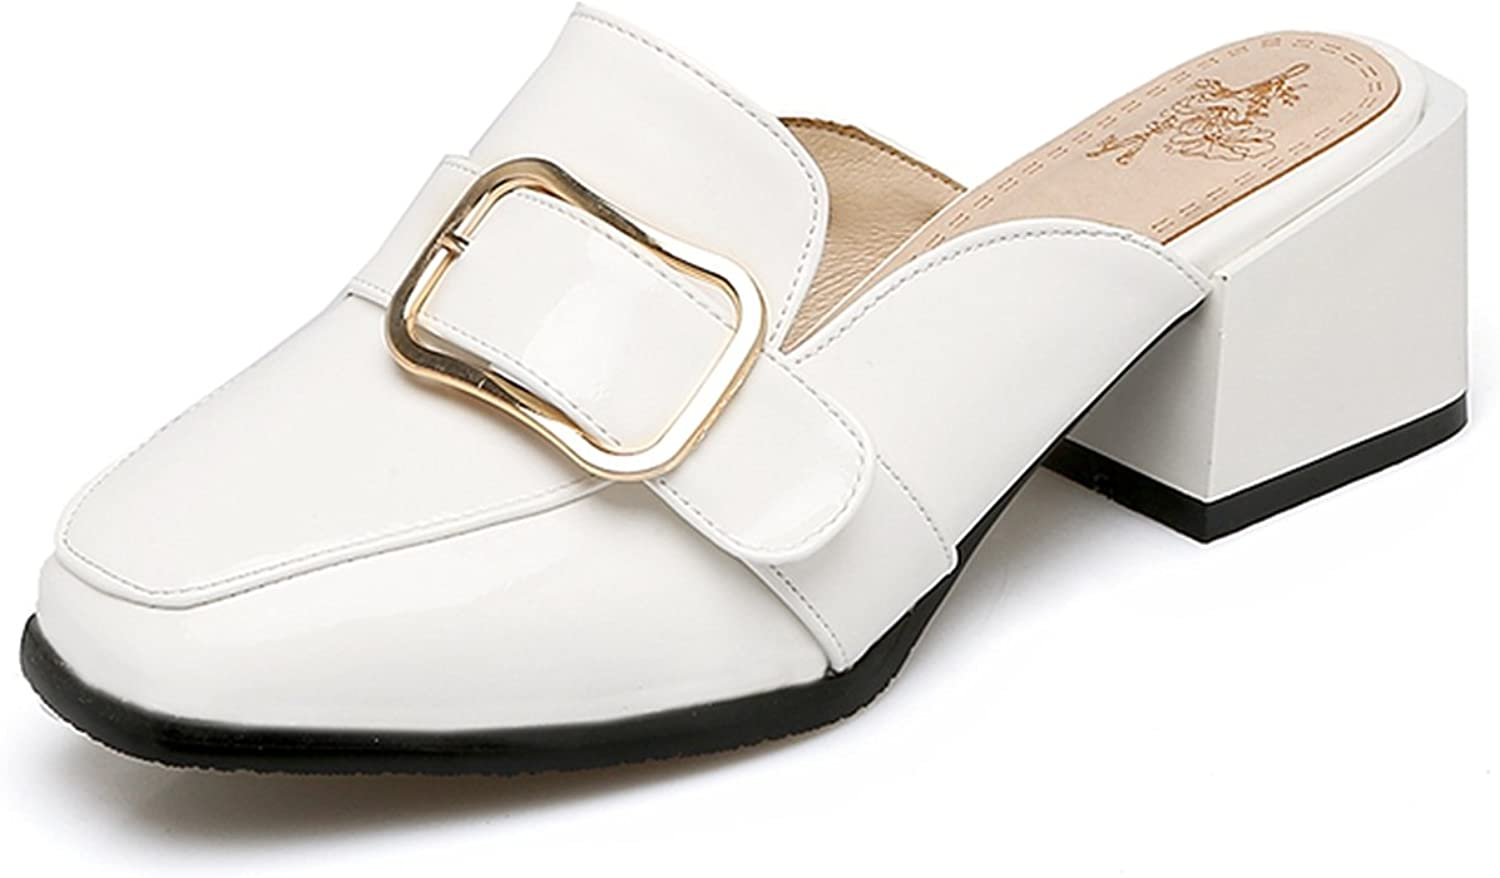 Nerefy Big Size 34-47 Square Toe Women Mules Pumps Fashion Square Med Heels Slip On Leisure shoes